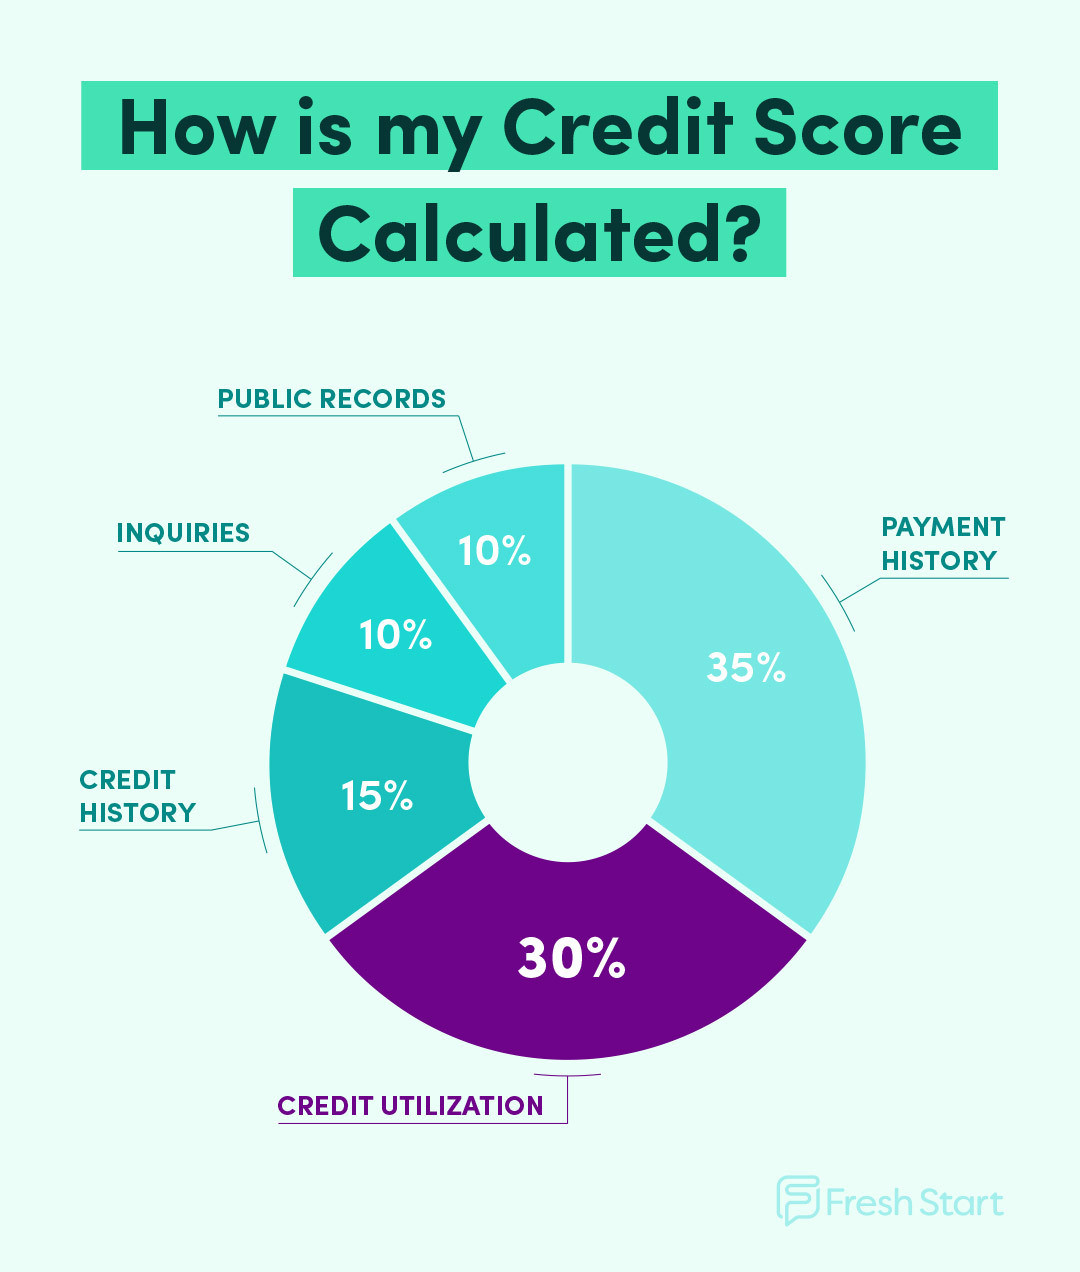 Pie chart with breakdown of credit score factors. Credit utilization makes up 30% of your credit score.